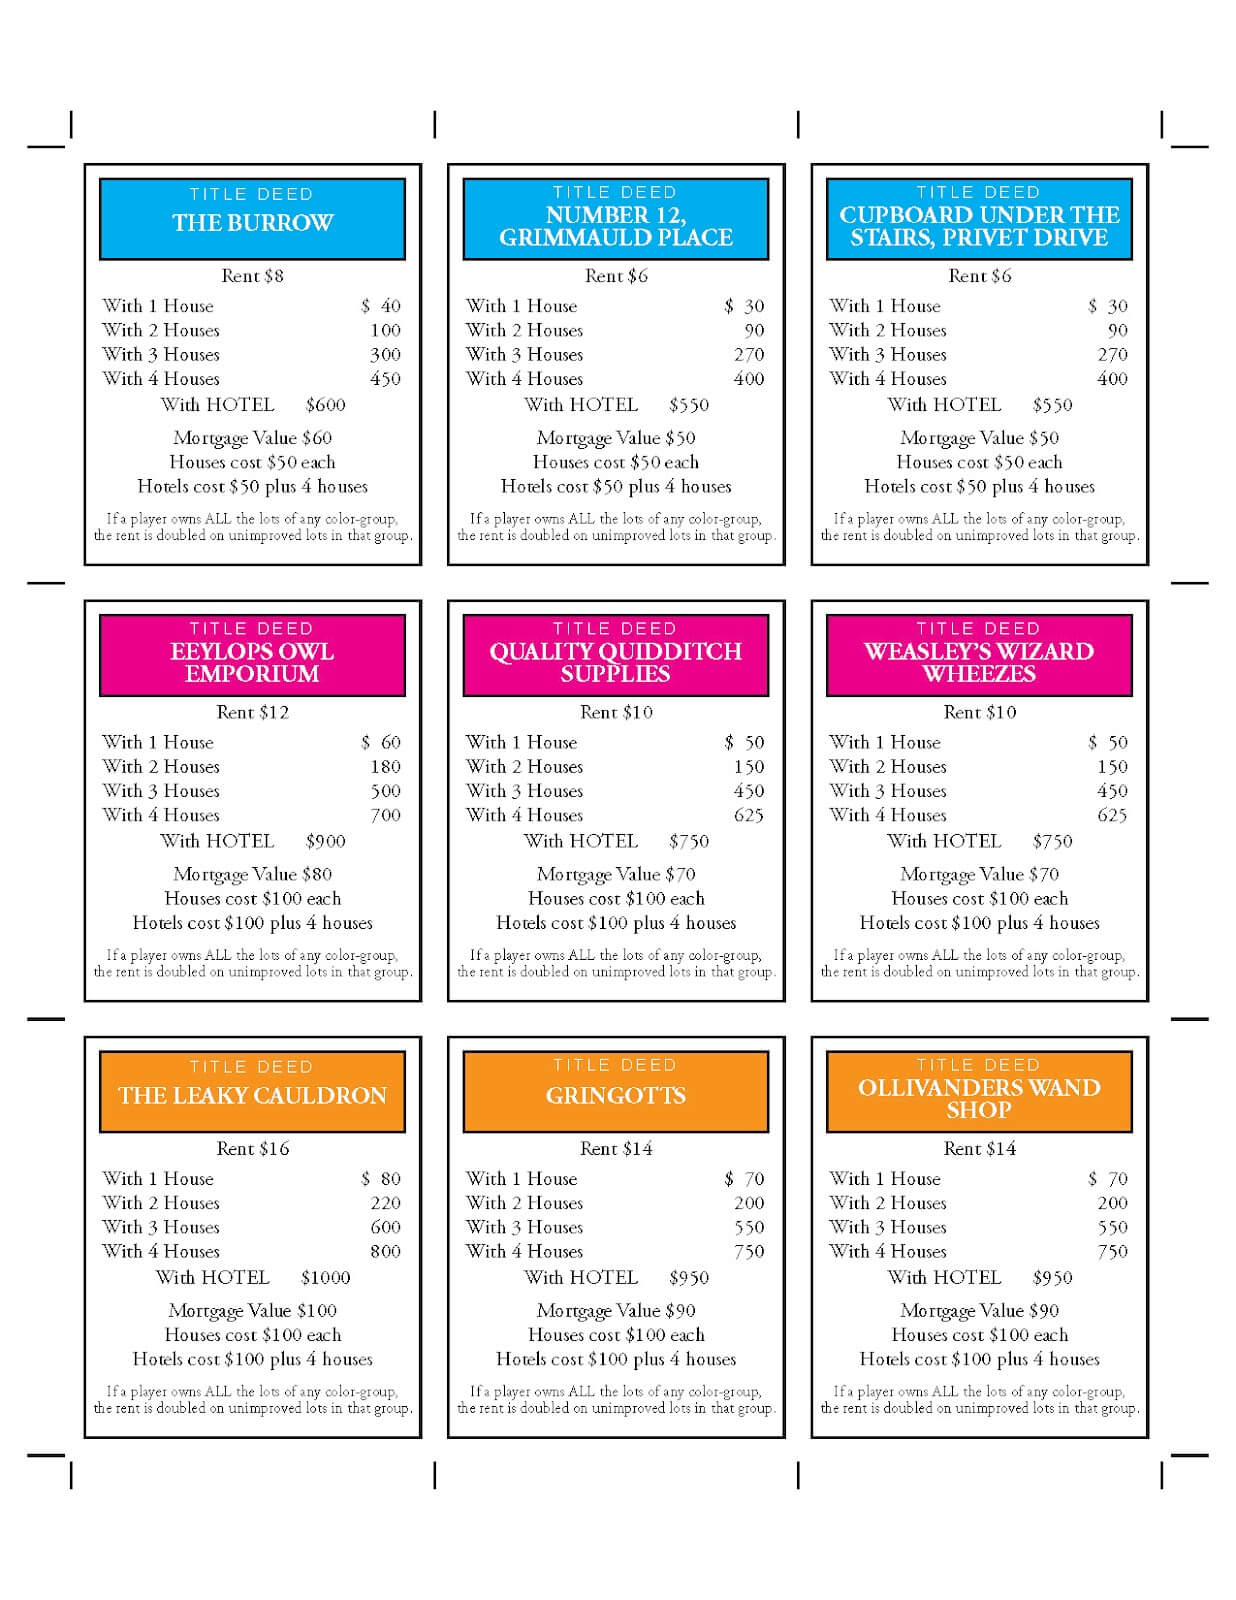 Design + Technology Education: How To Make Harry Potter Monopoly In Monopoly Property Cards Template